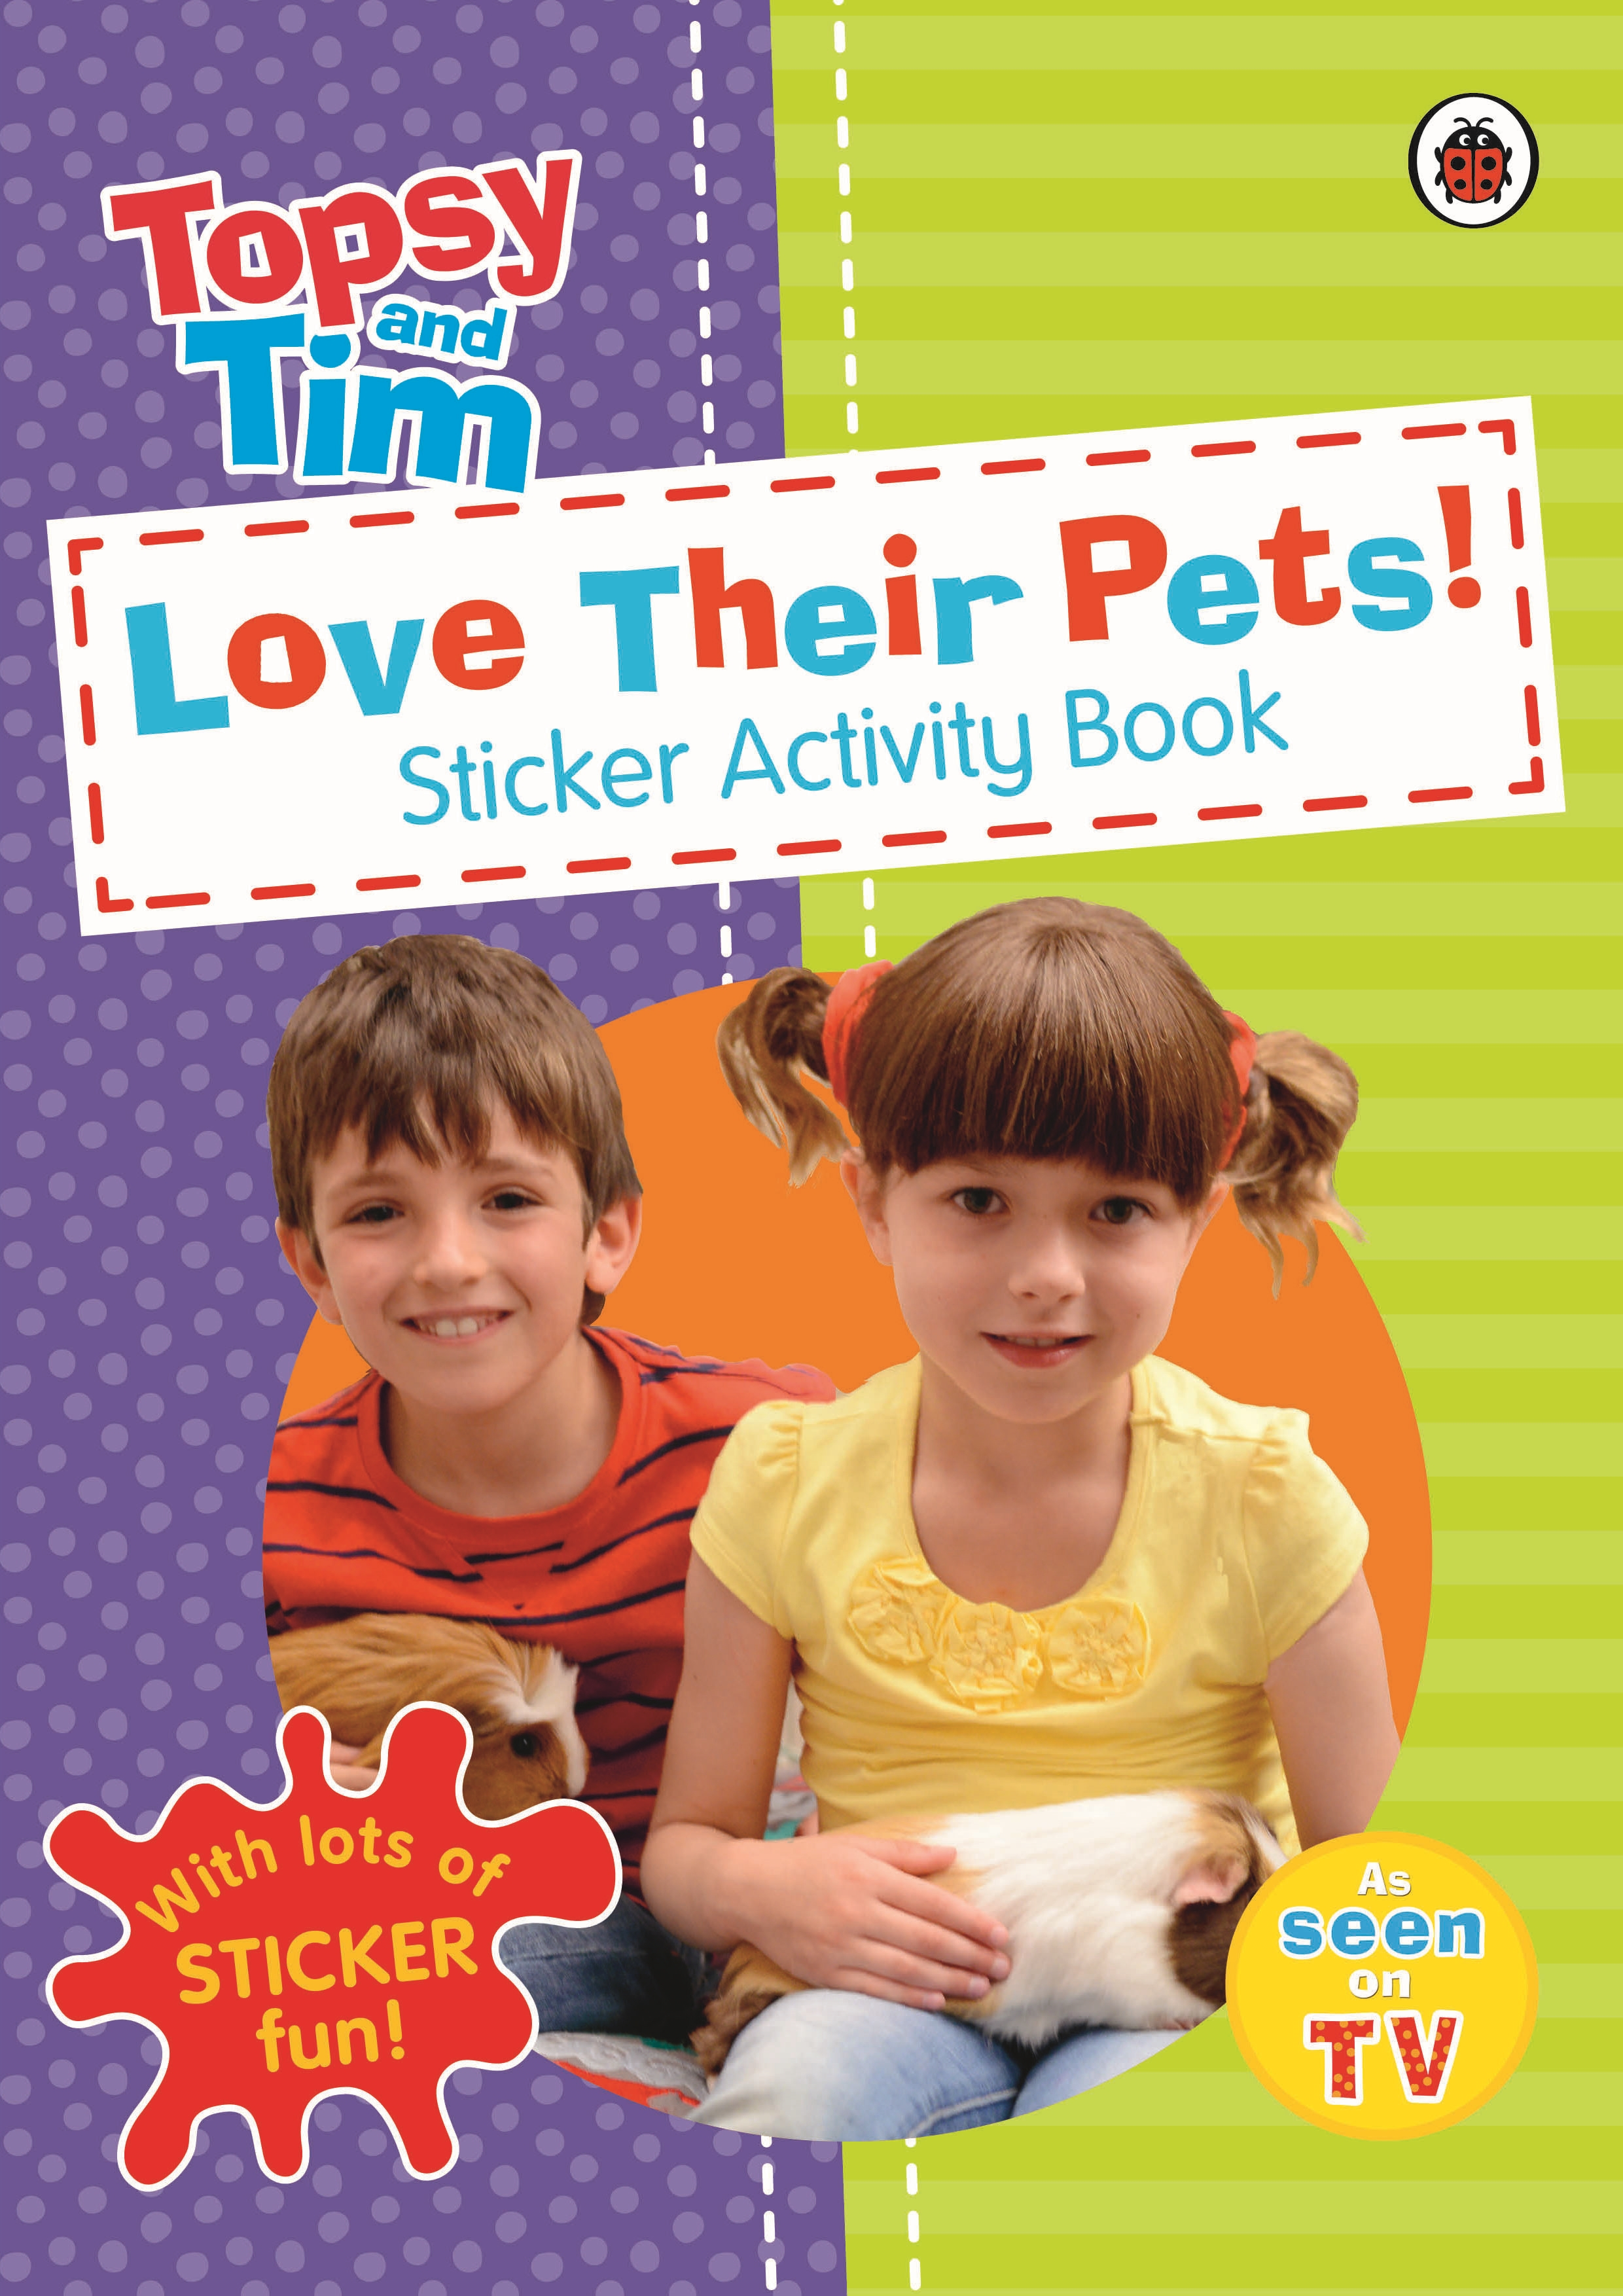 Topsy and Tim Love their pats!